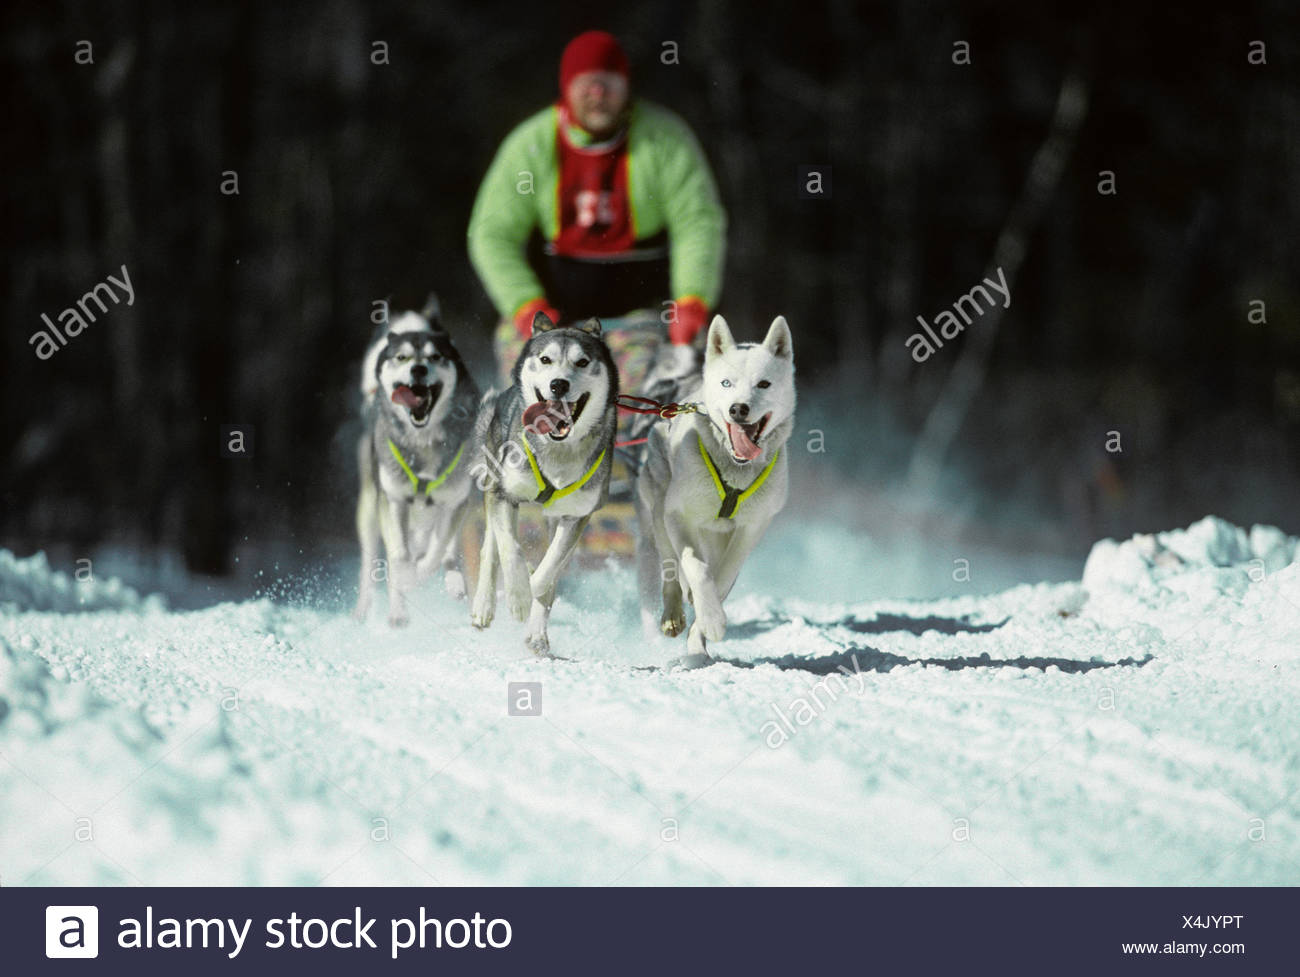 Siberian Husky (Canis lupus familiaris) Active energetic resilient breed whose ancestors from extremely cold harsh environment - Stock Image